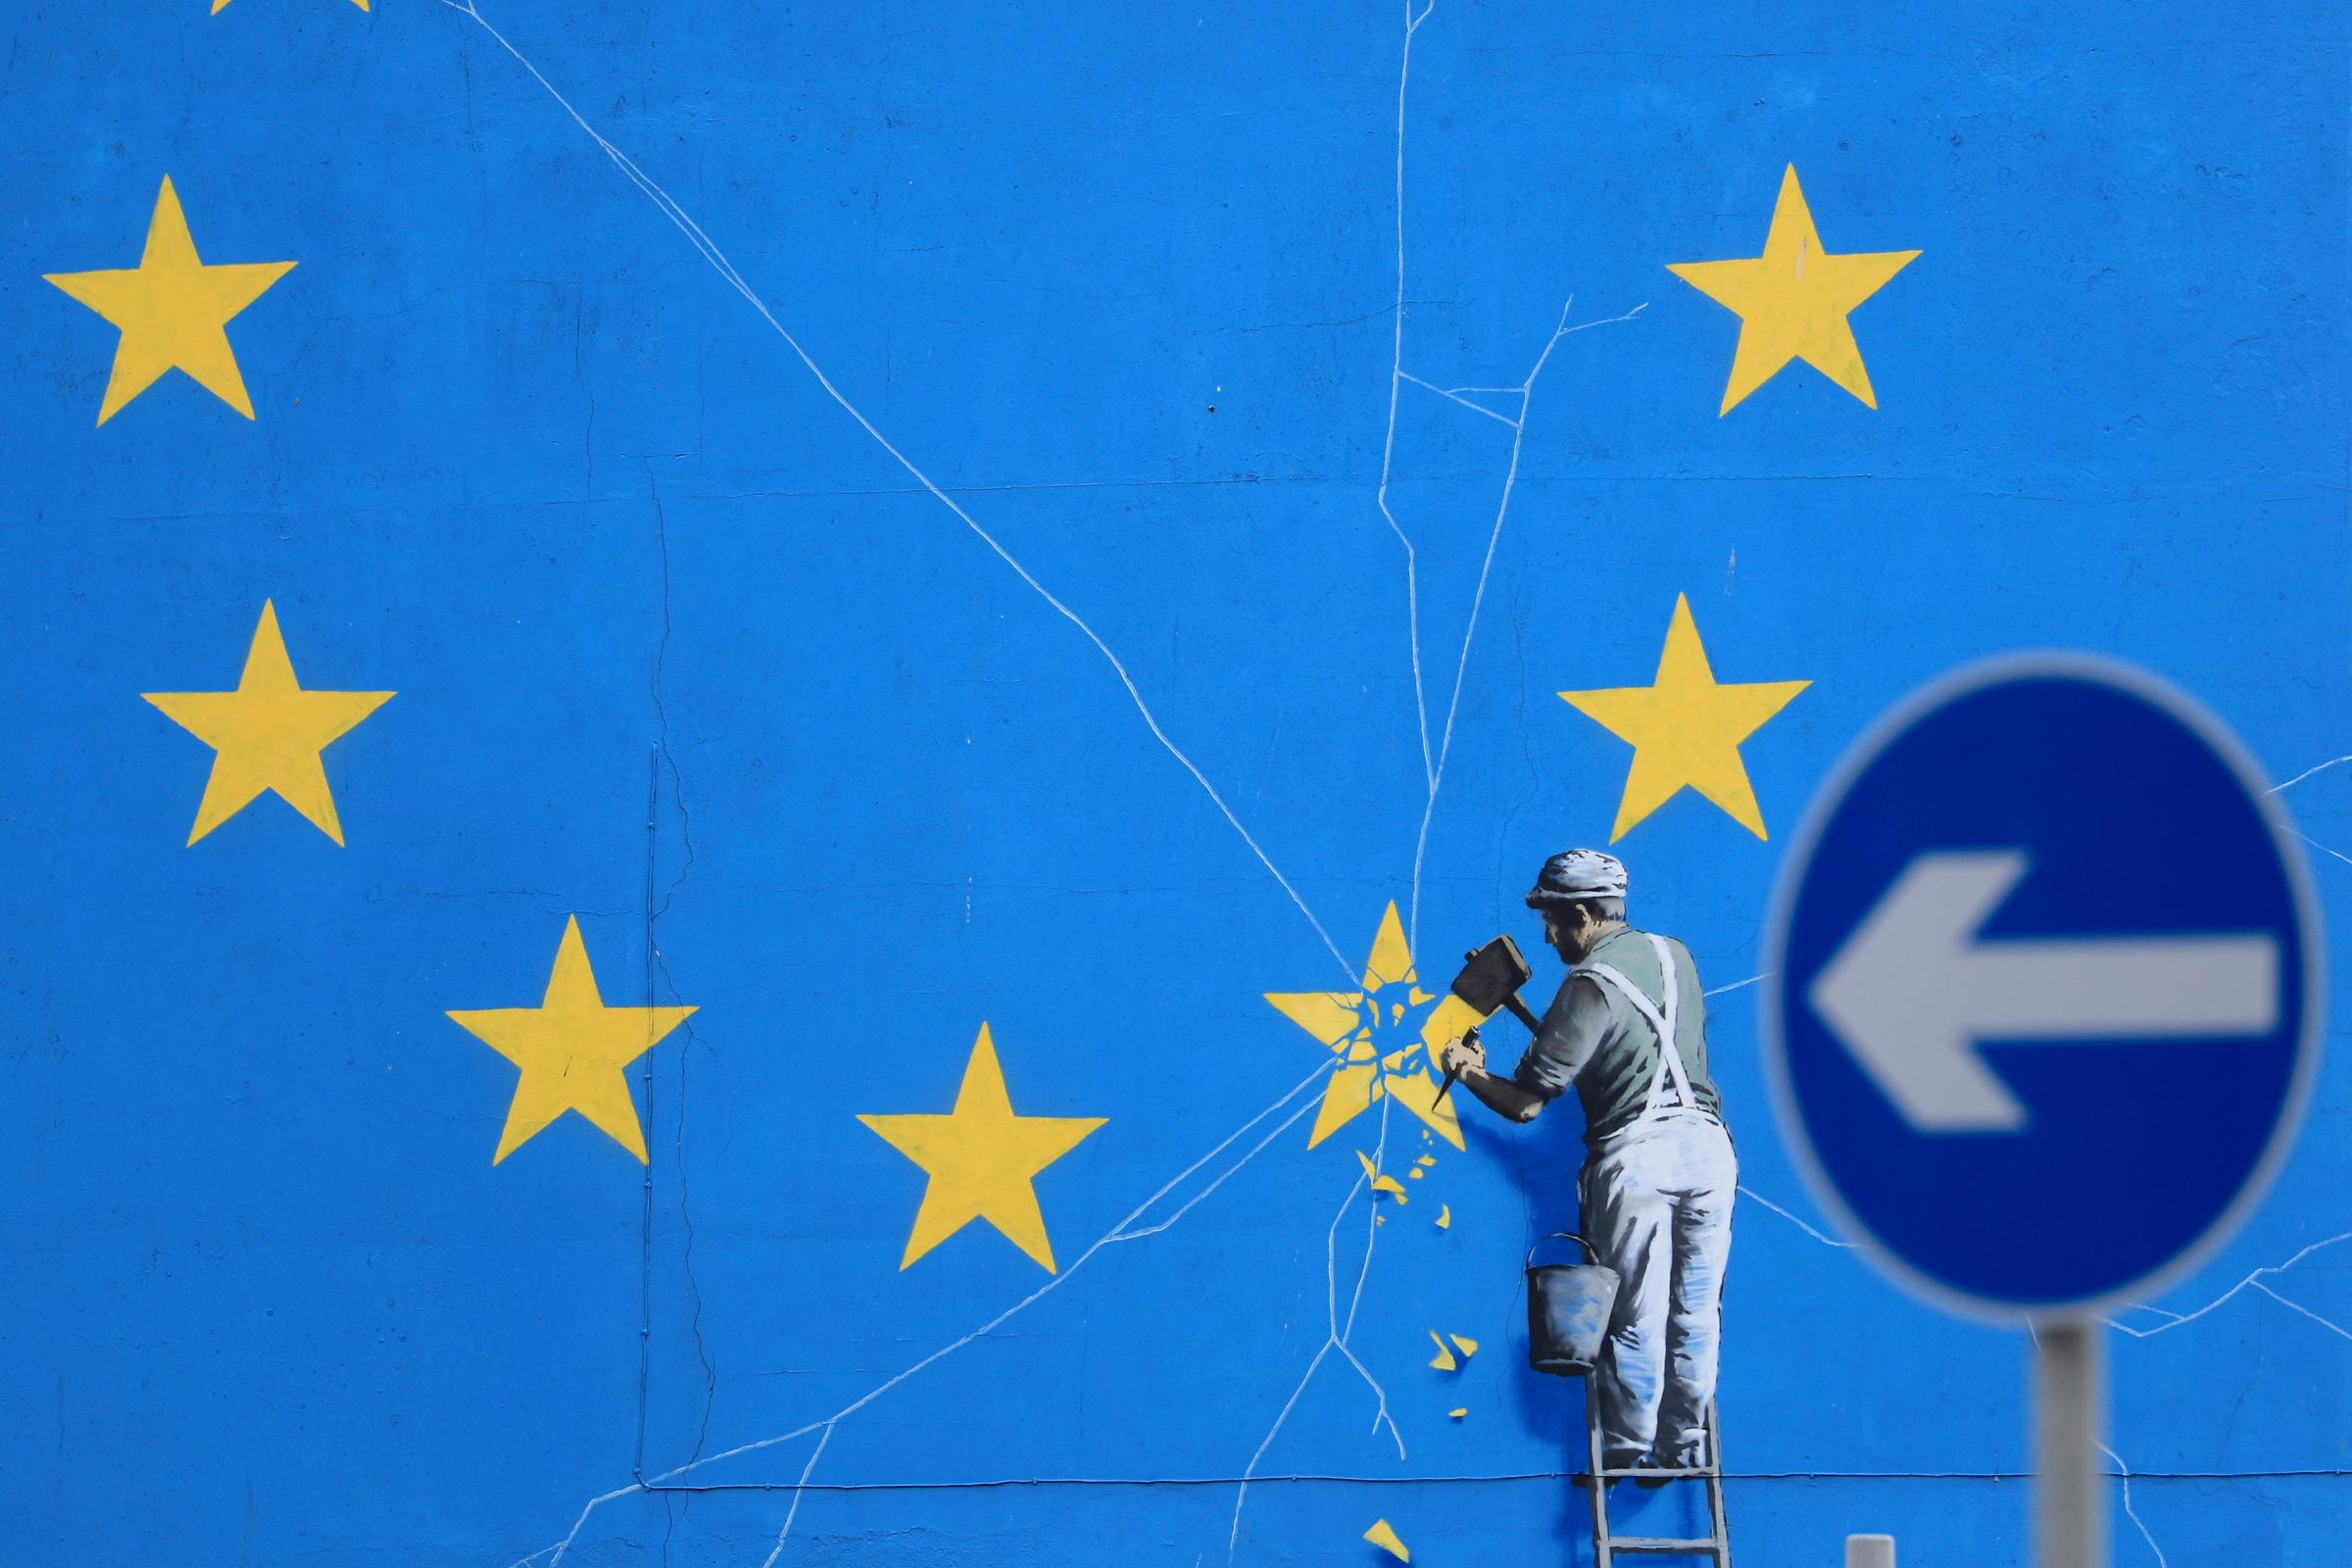 A view of the Brexit-inspired mural by artist Banksy in Dover, Kent